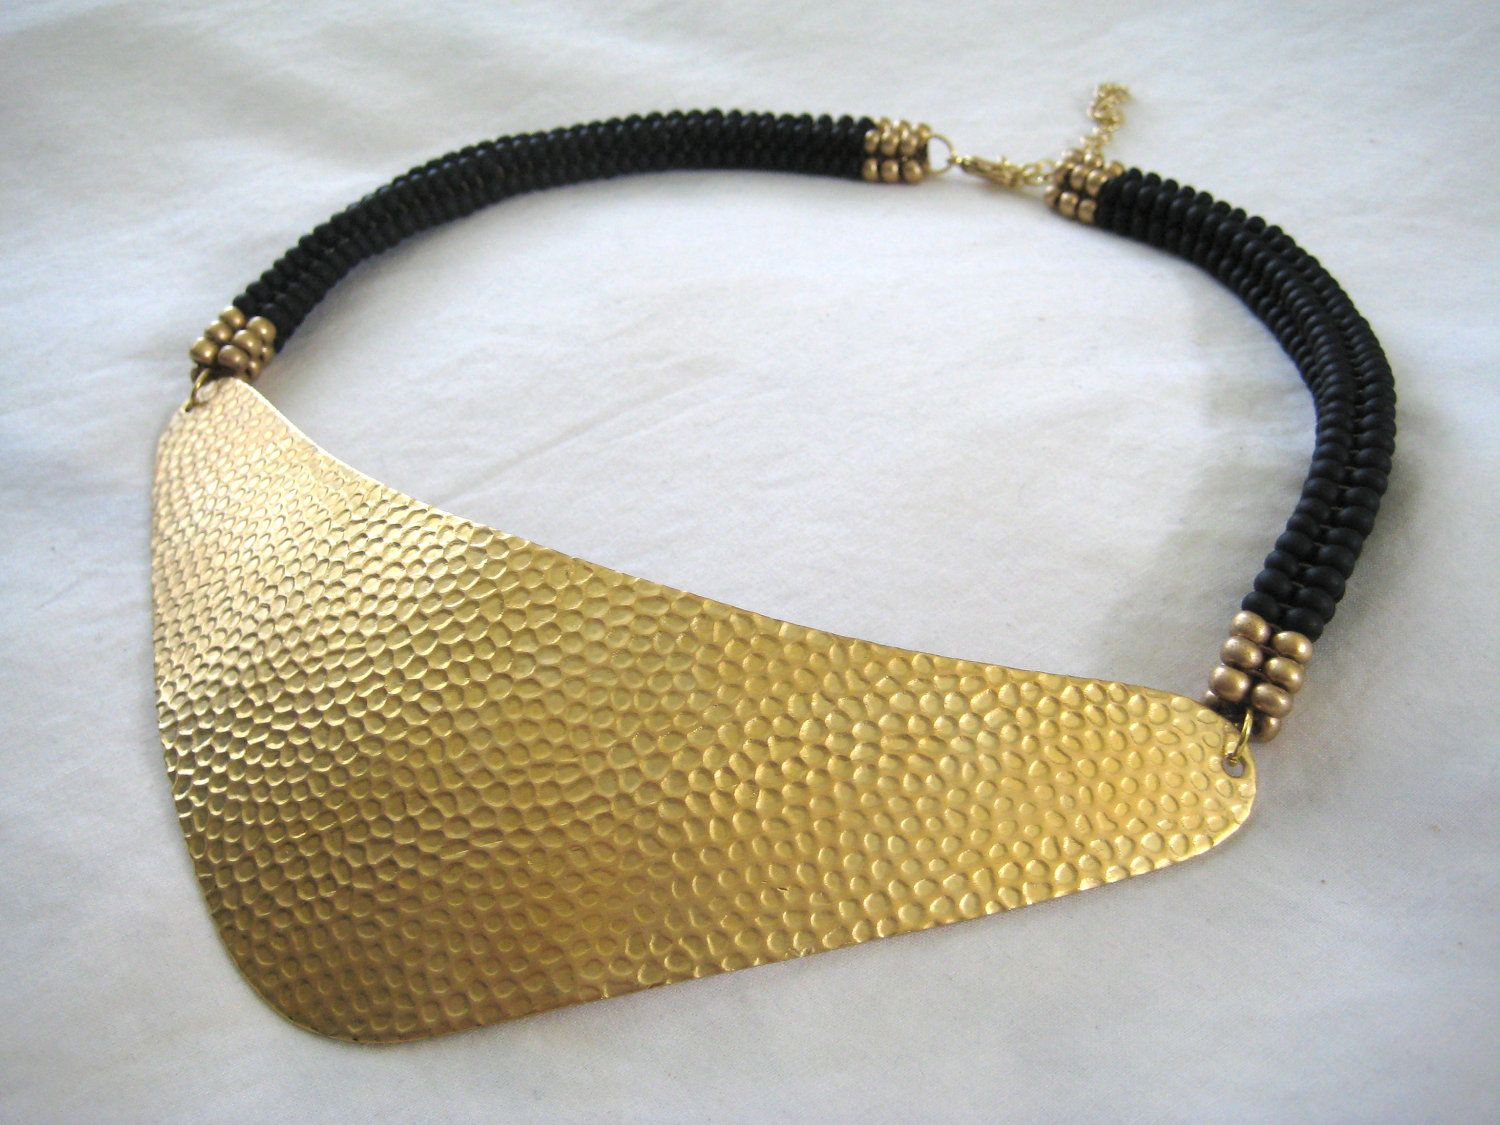 Hammered Gold Triangle Bib and Woven Beadwork Collar Necklace - Black/Gold. $92.00, via Etsy.